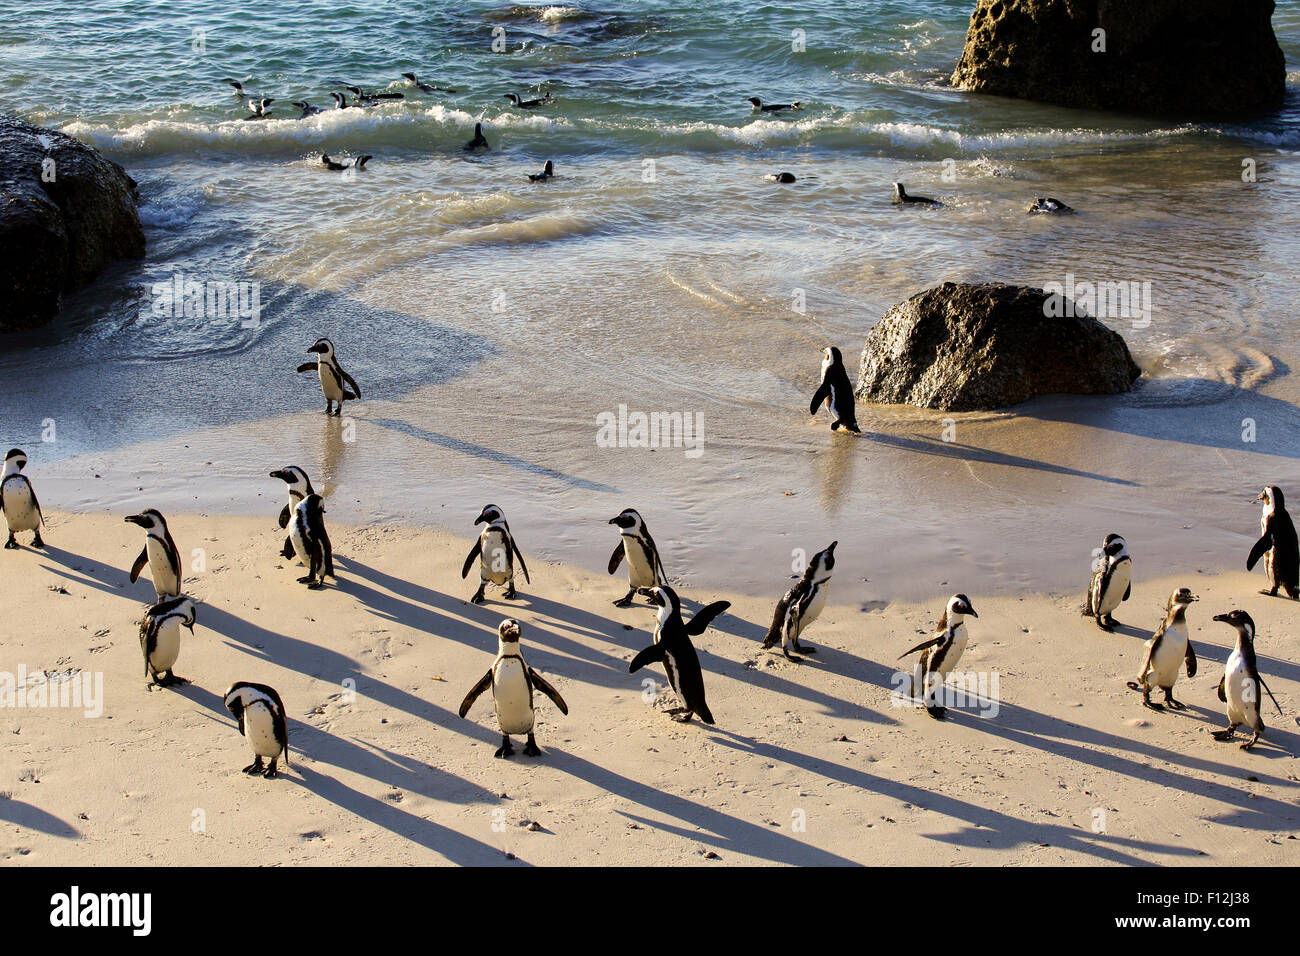 African penguin (Spheniscus demersus) colony at Boulders Beach, Cape Town - Stock Image